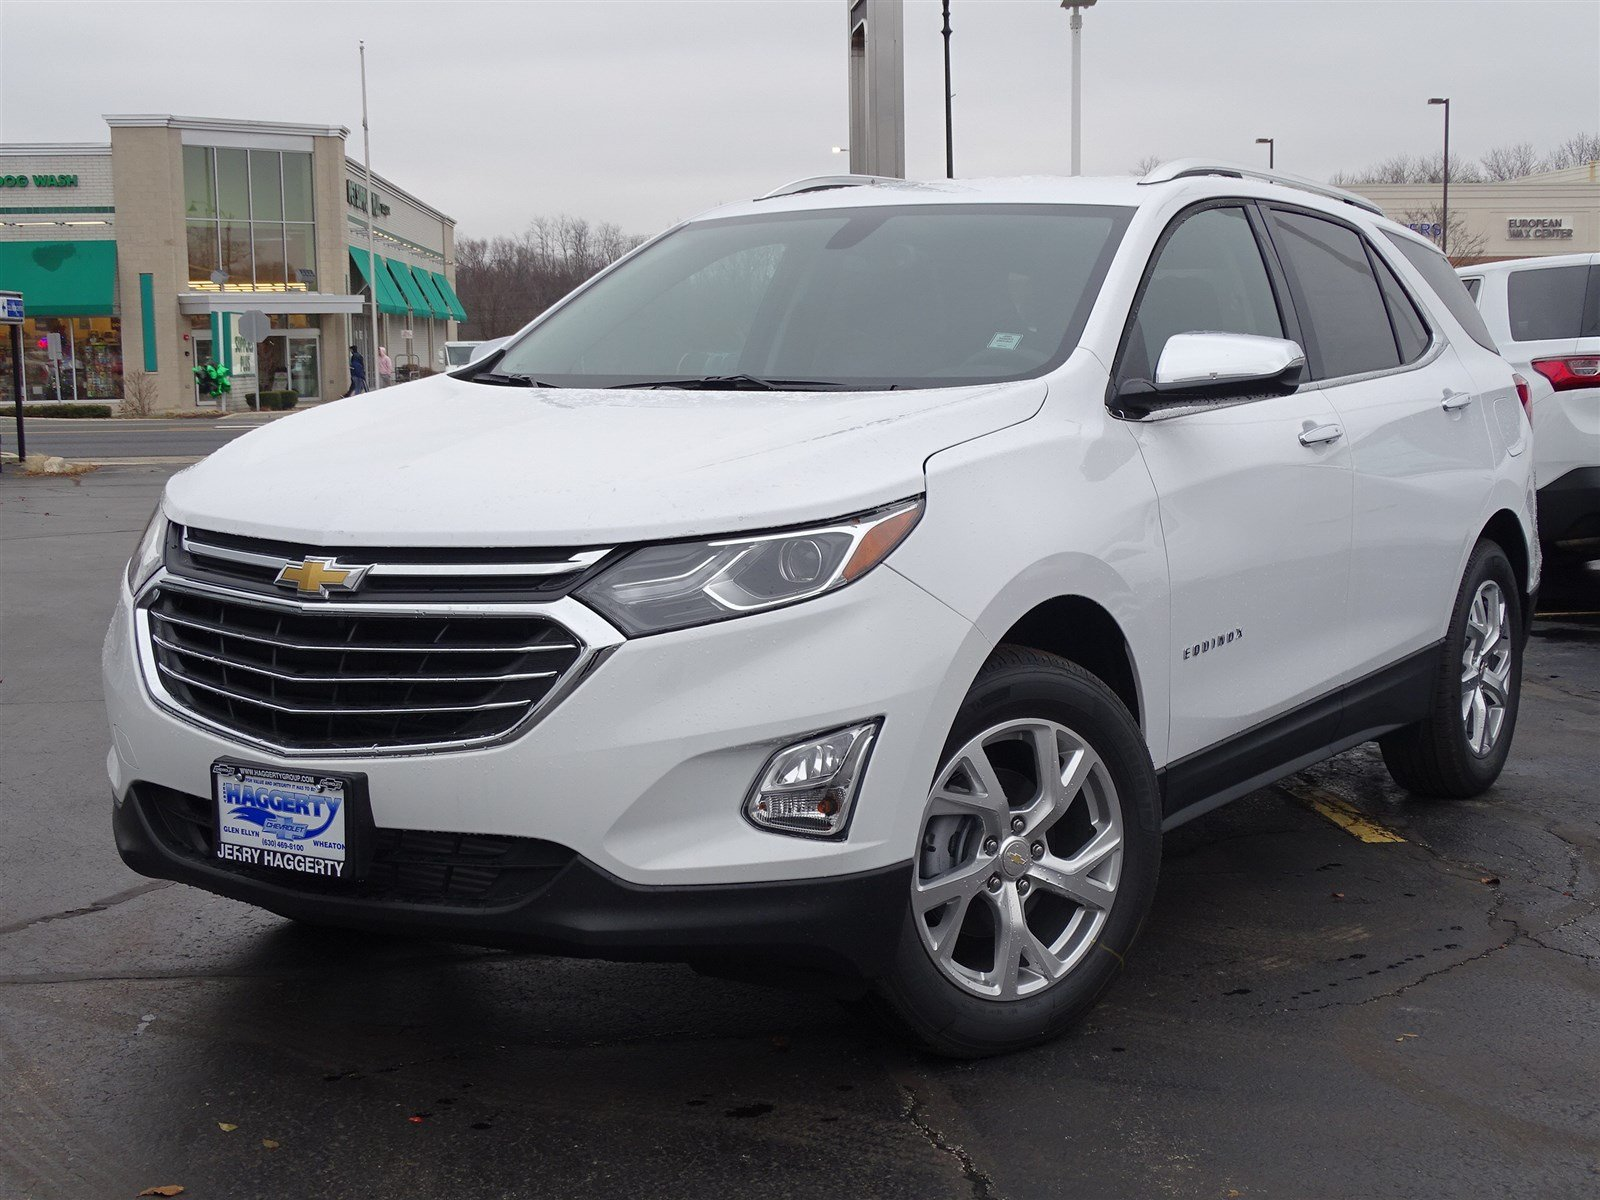 New 2019 Chevrolet Equinox Premier 4DR SUV in Glen Ellyn